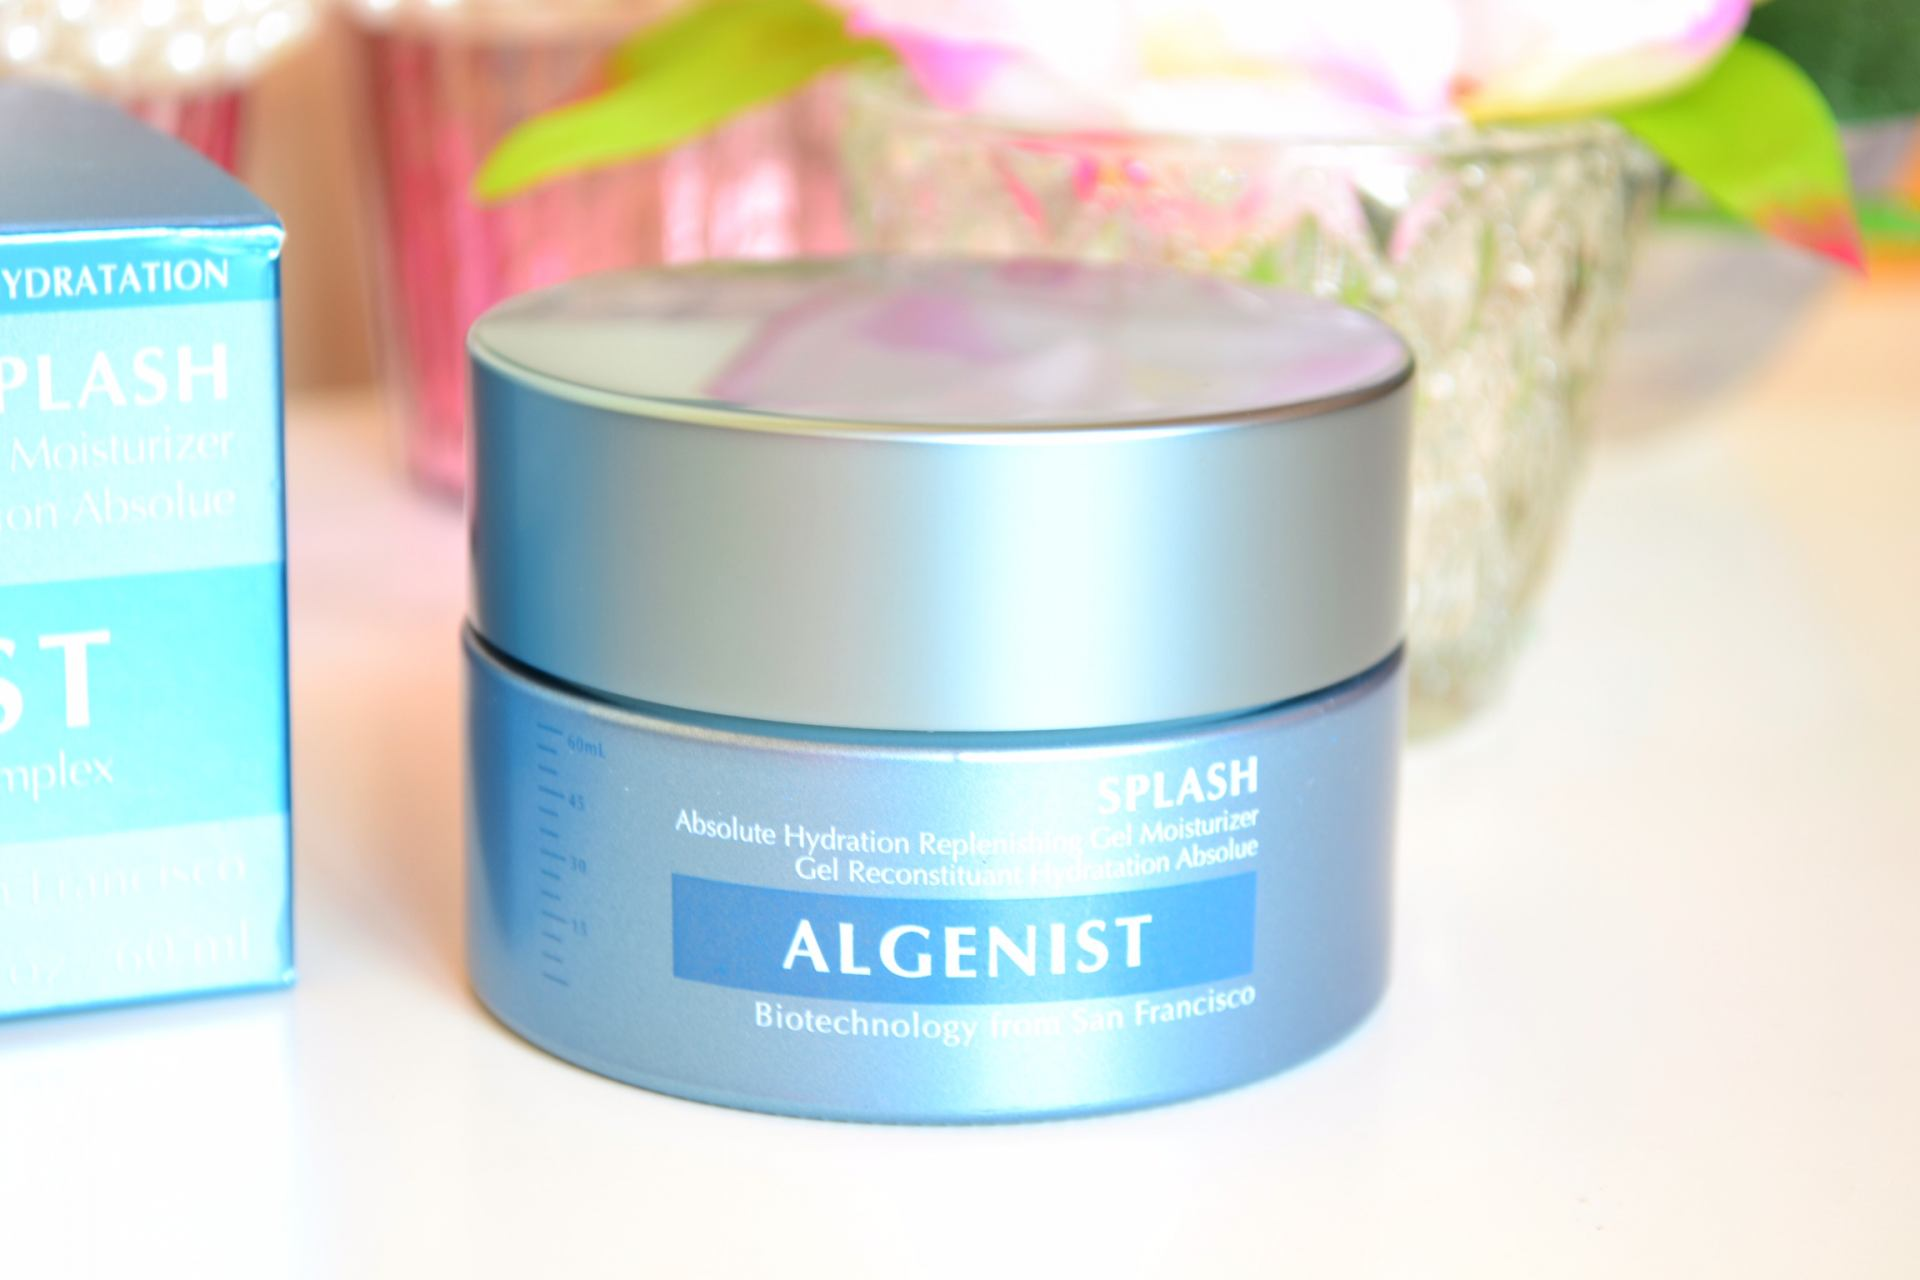 algenist-splash-moisturiser-review-2018